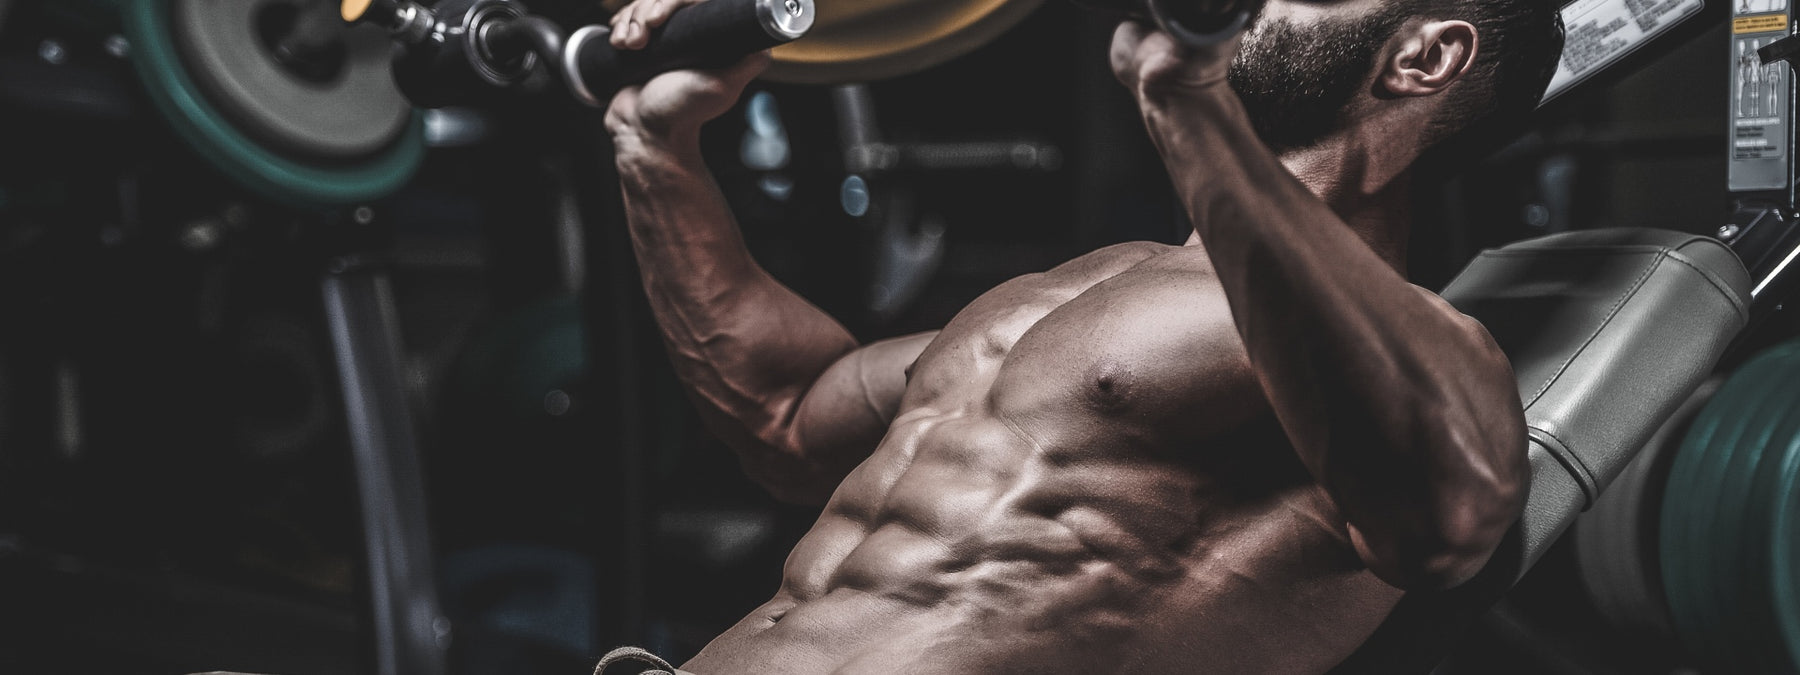 Attack! How to Improve Weak Body Parts & Lifts